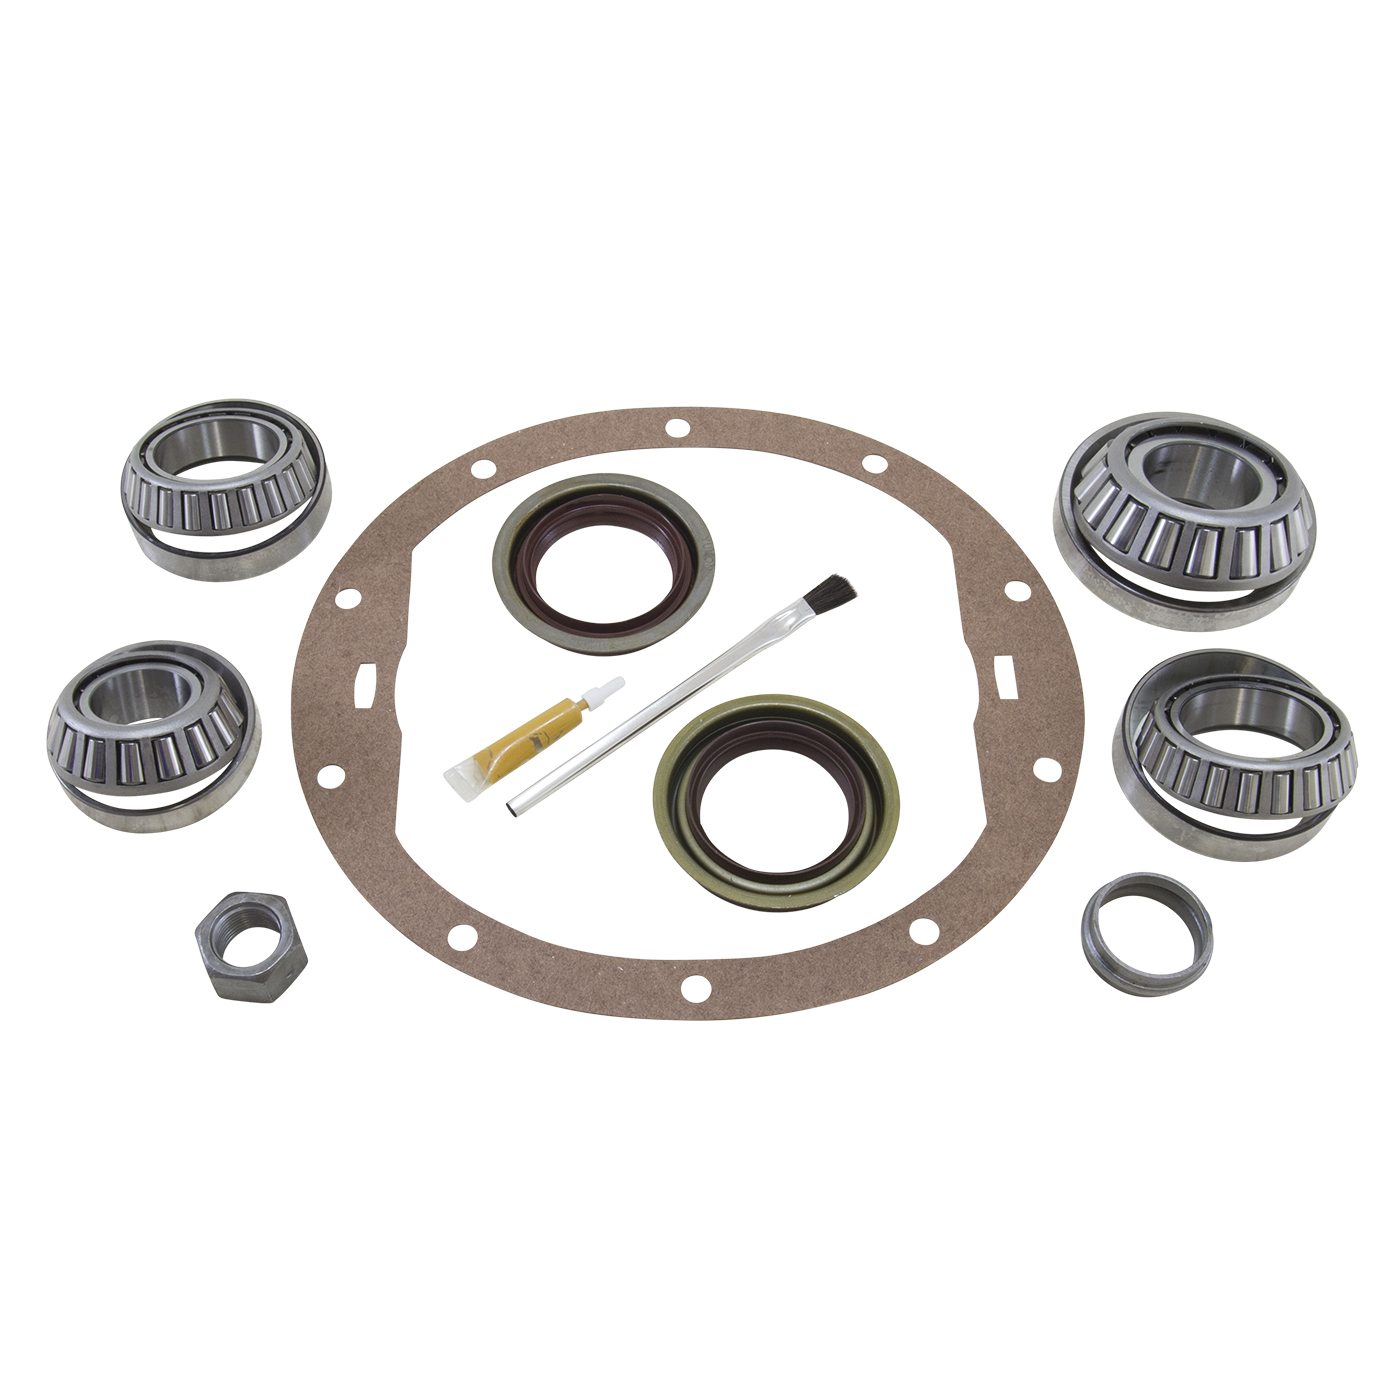 ZBKGMVET-CI - USA Standard Bearing kit for '63-'79 Corvette